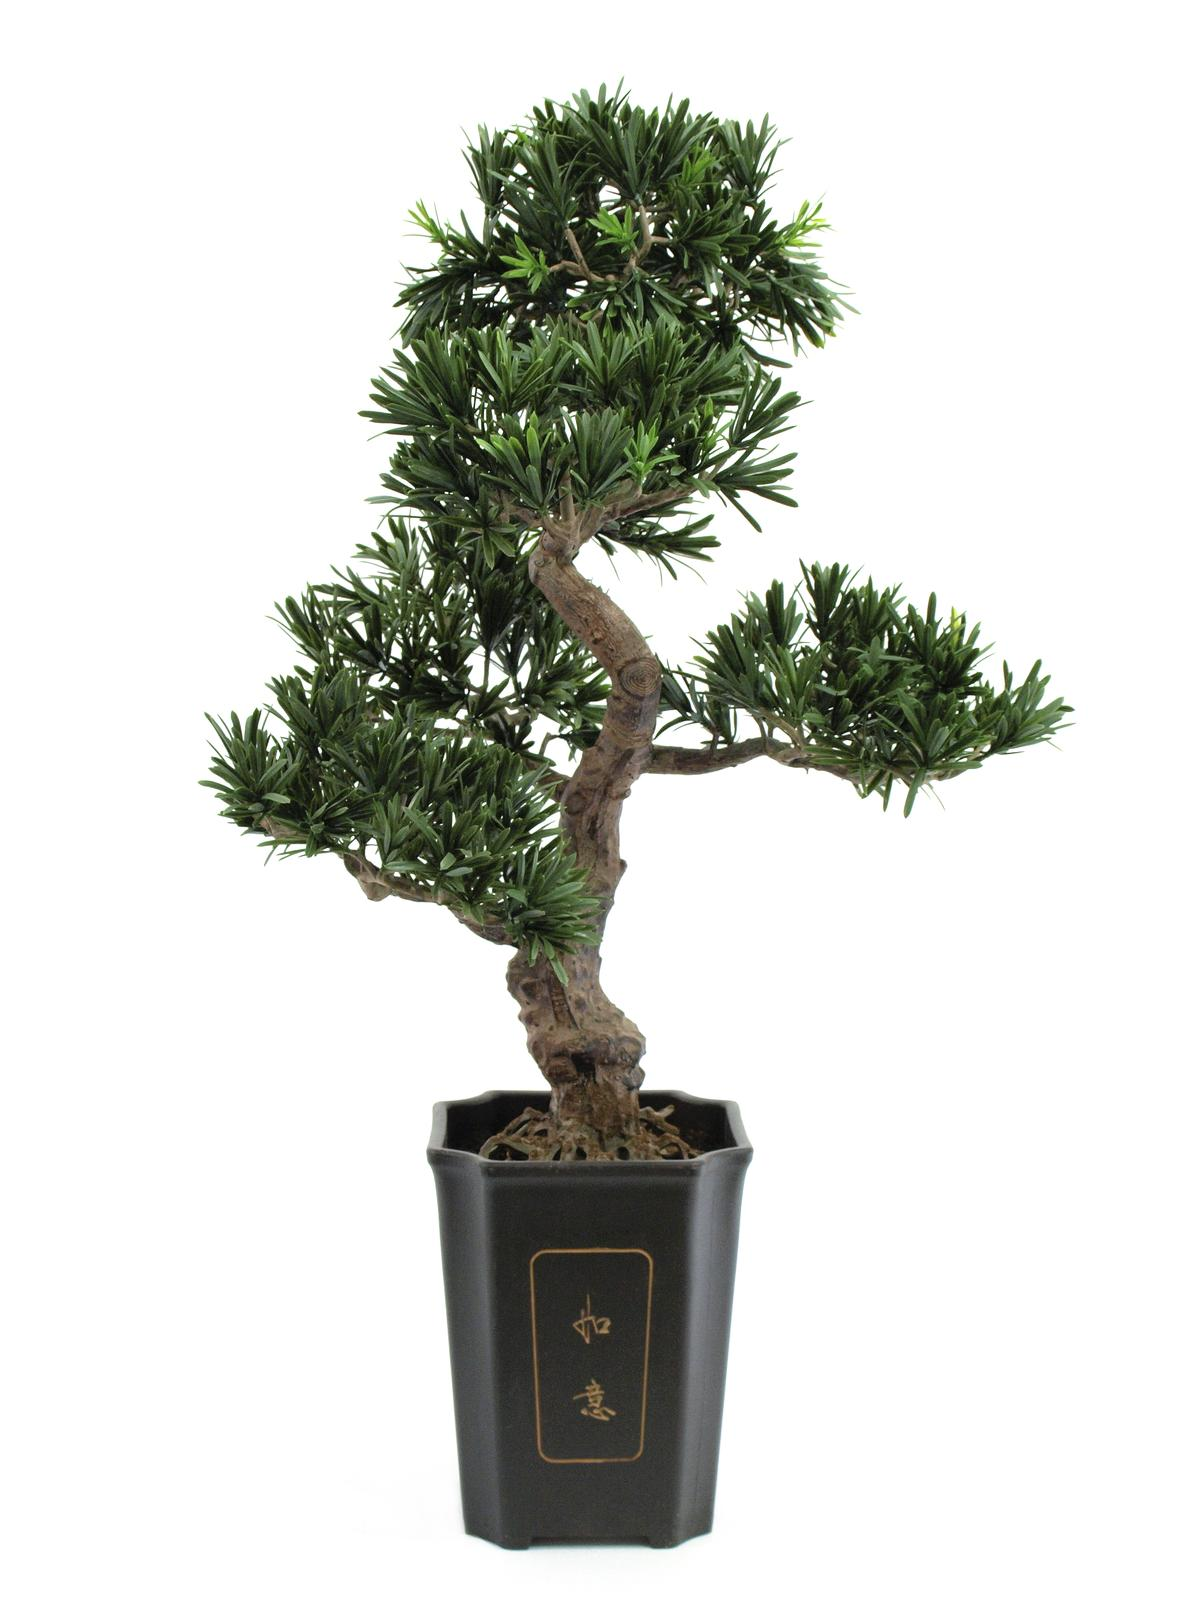 EUROPALMS Bonsai podocarpus pi